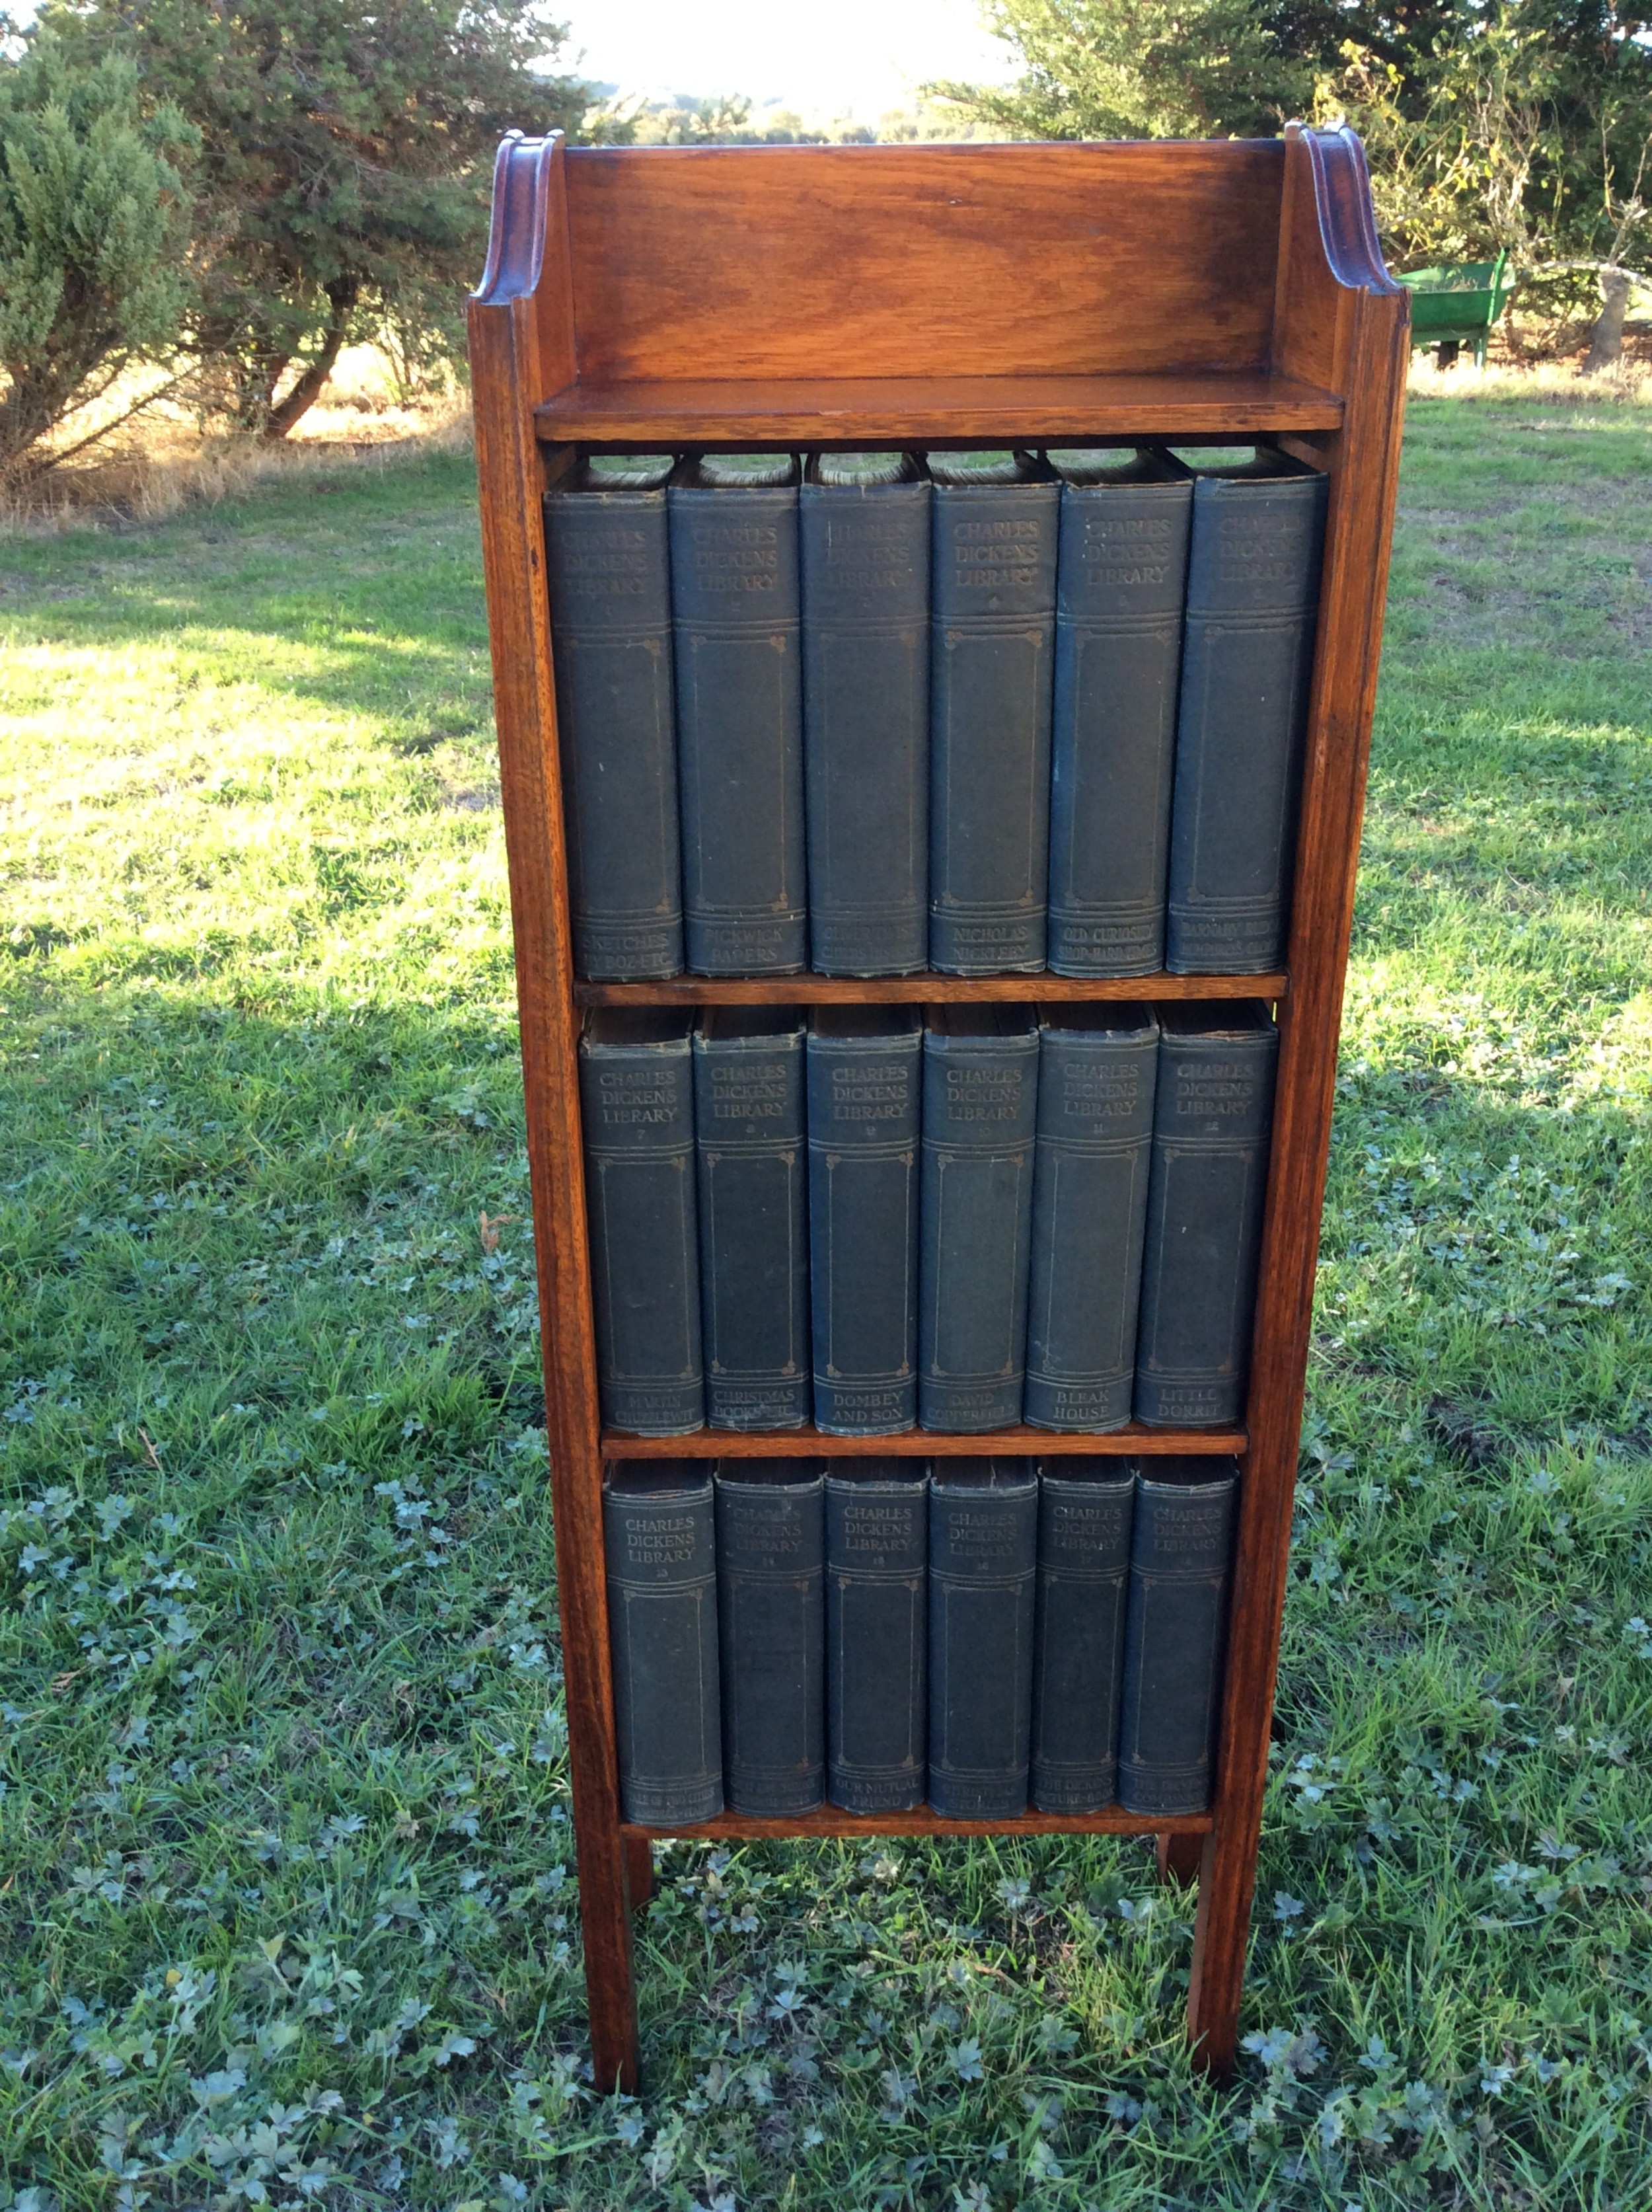 oak open bookcase complete with set of charles dickens novels